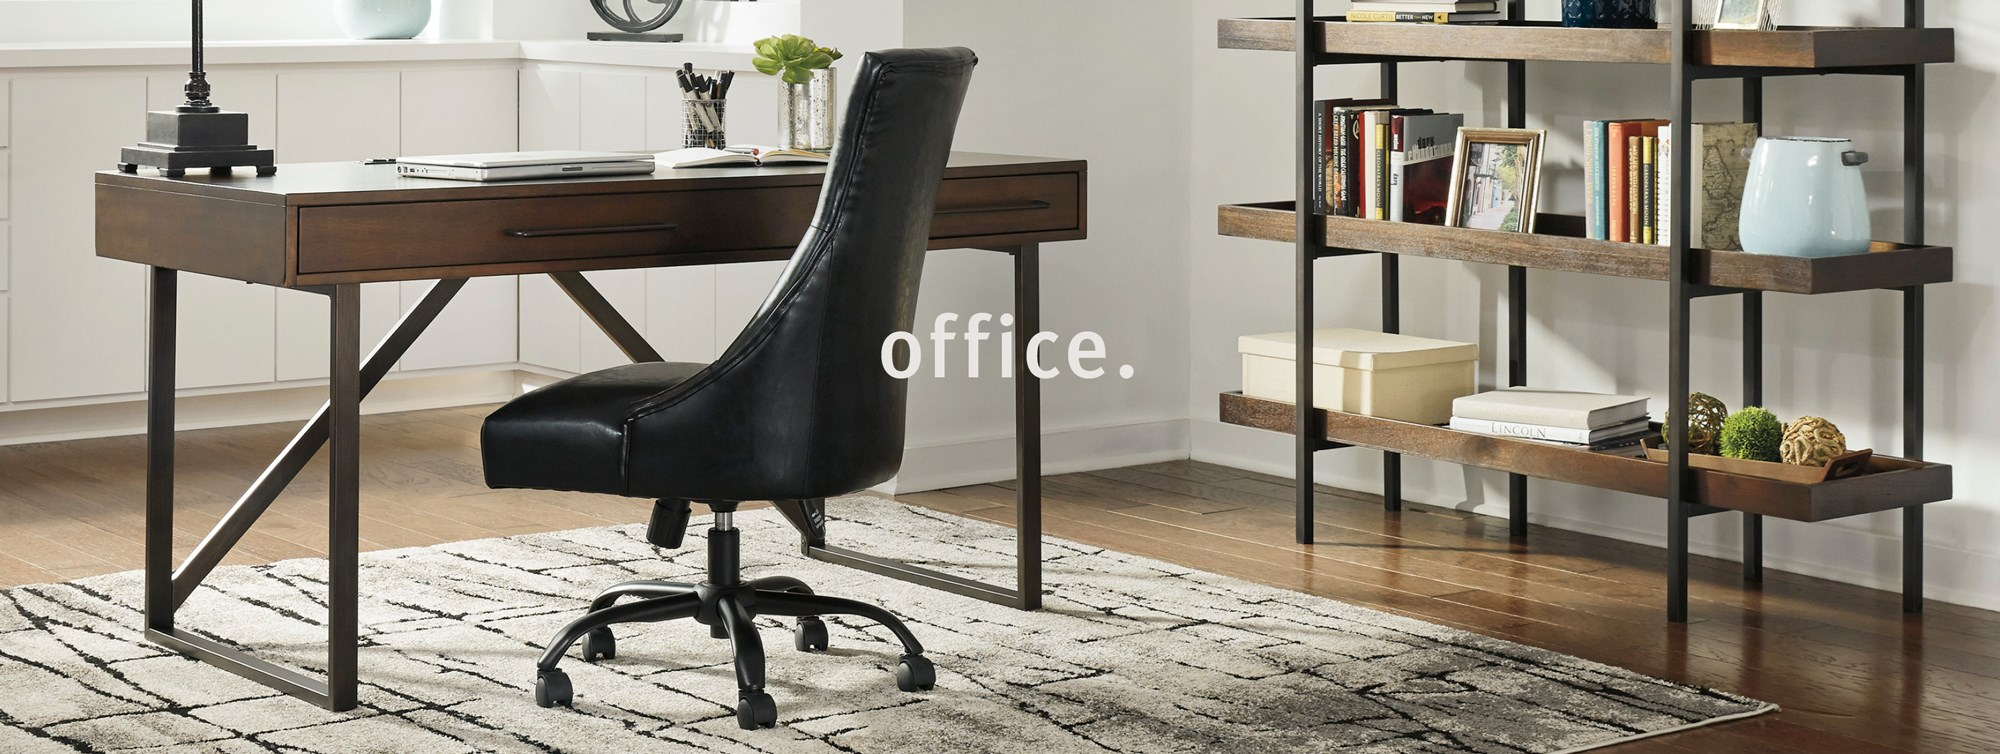 Home Office Furniture Abode Hawaii S Online Home Store